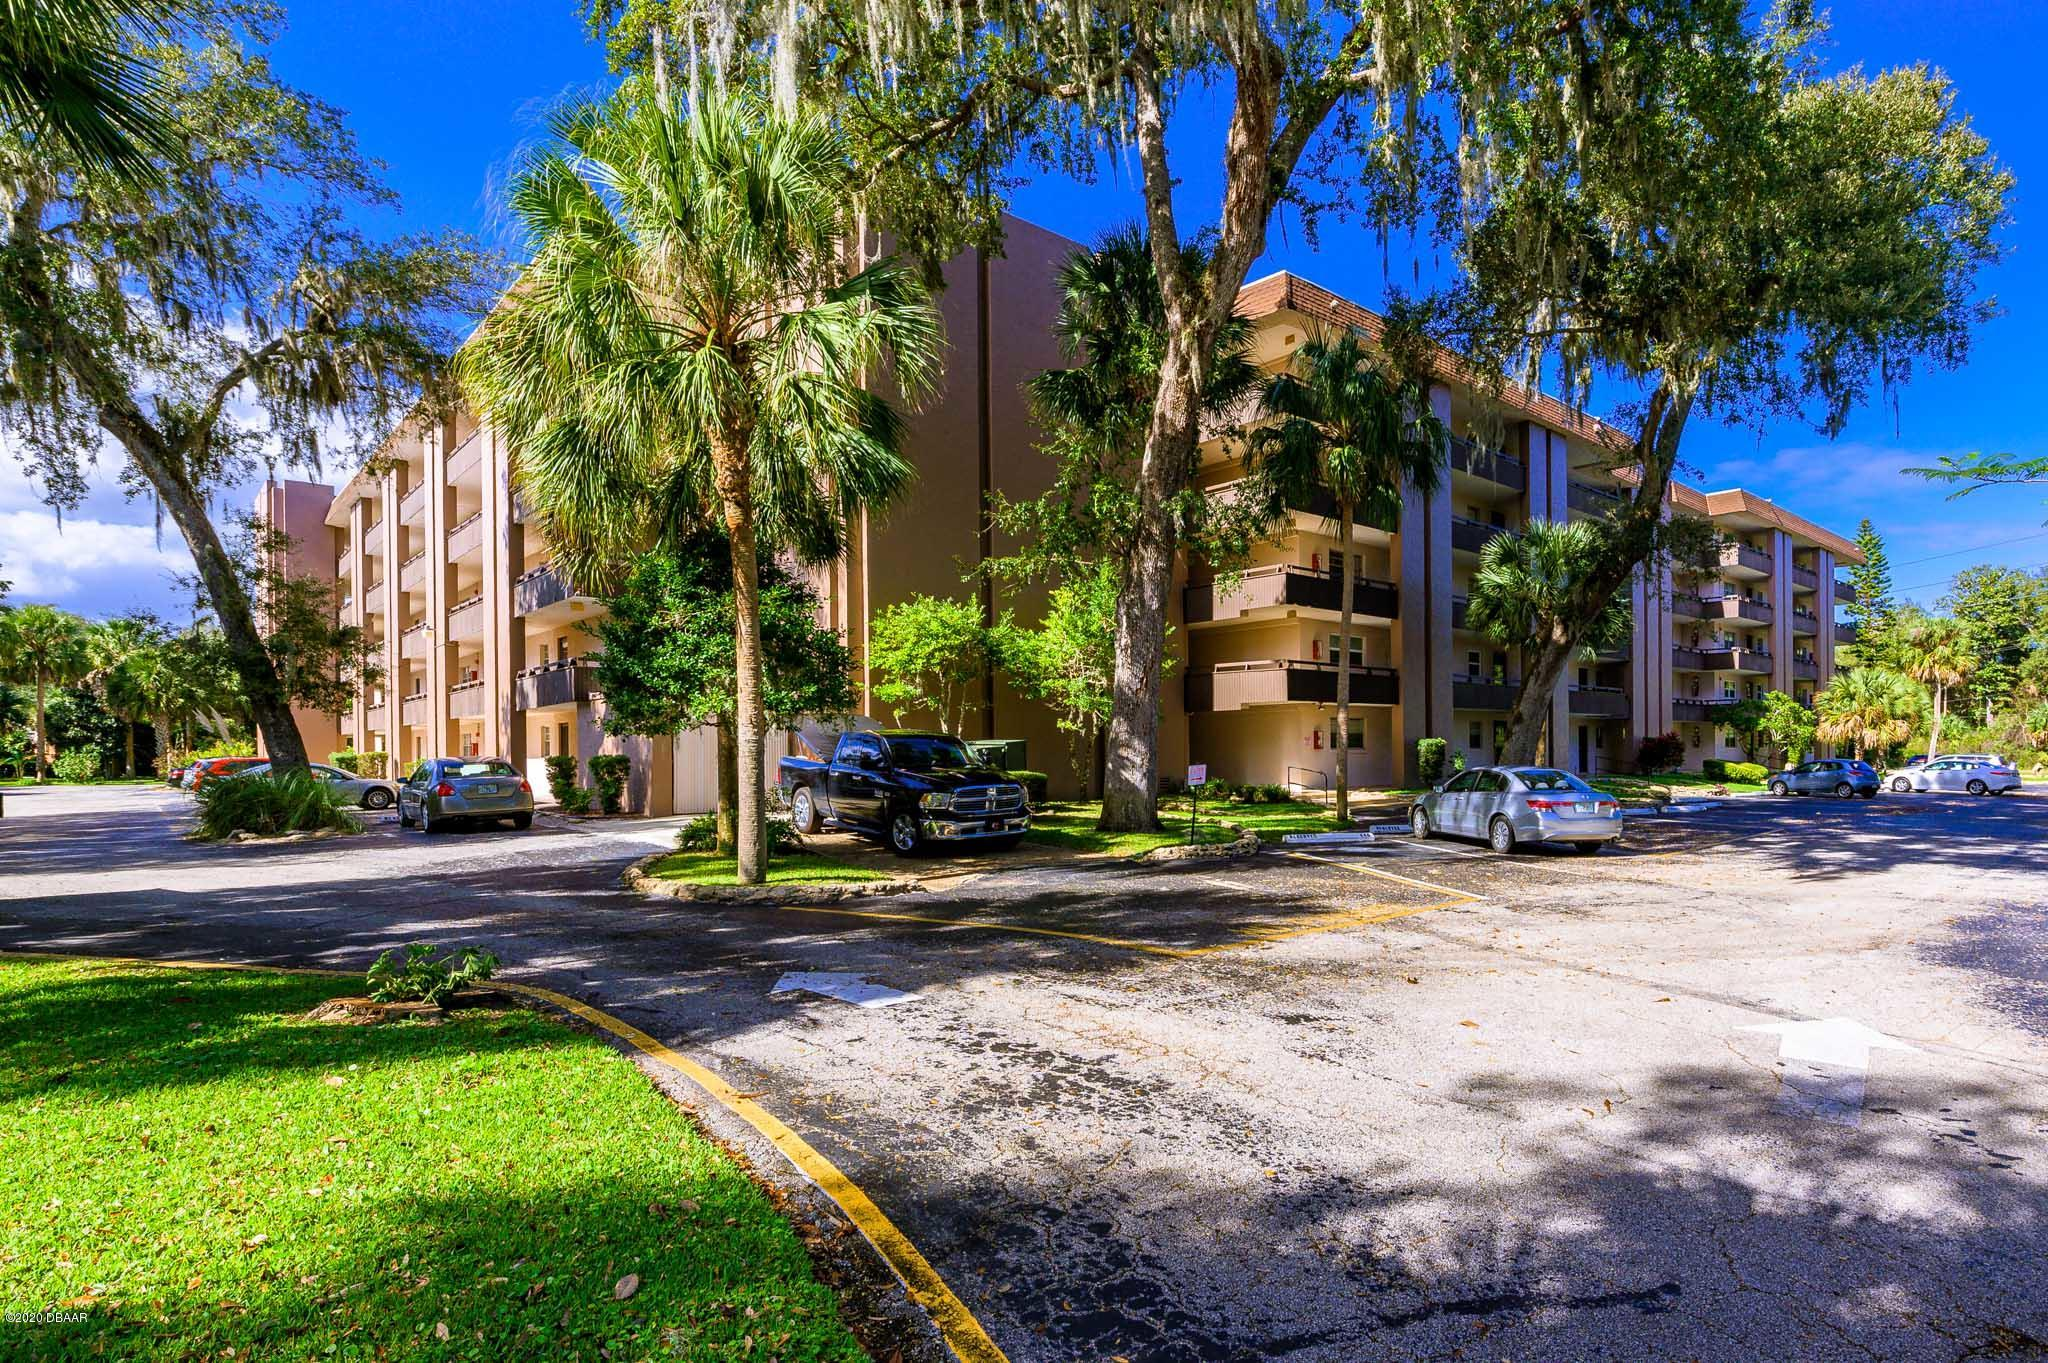 Photo of 640 N Nova Road #1090, Ormond Beach, FL 32174